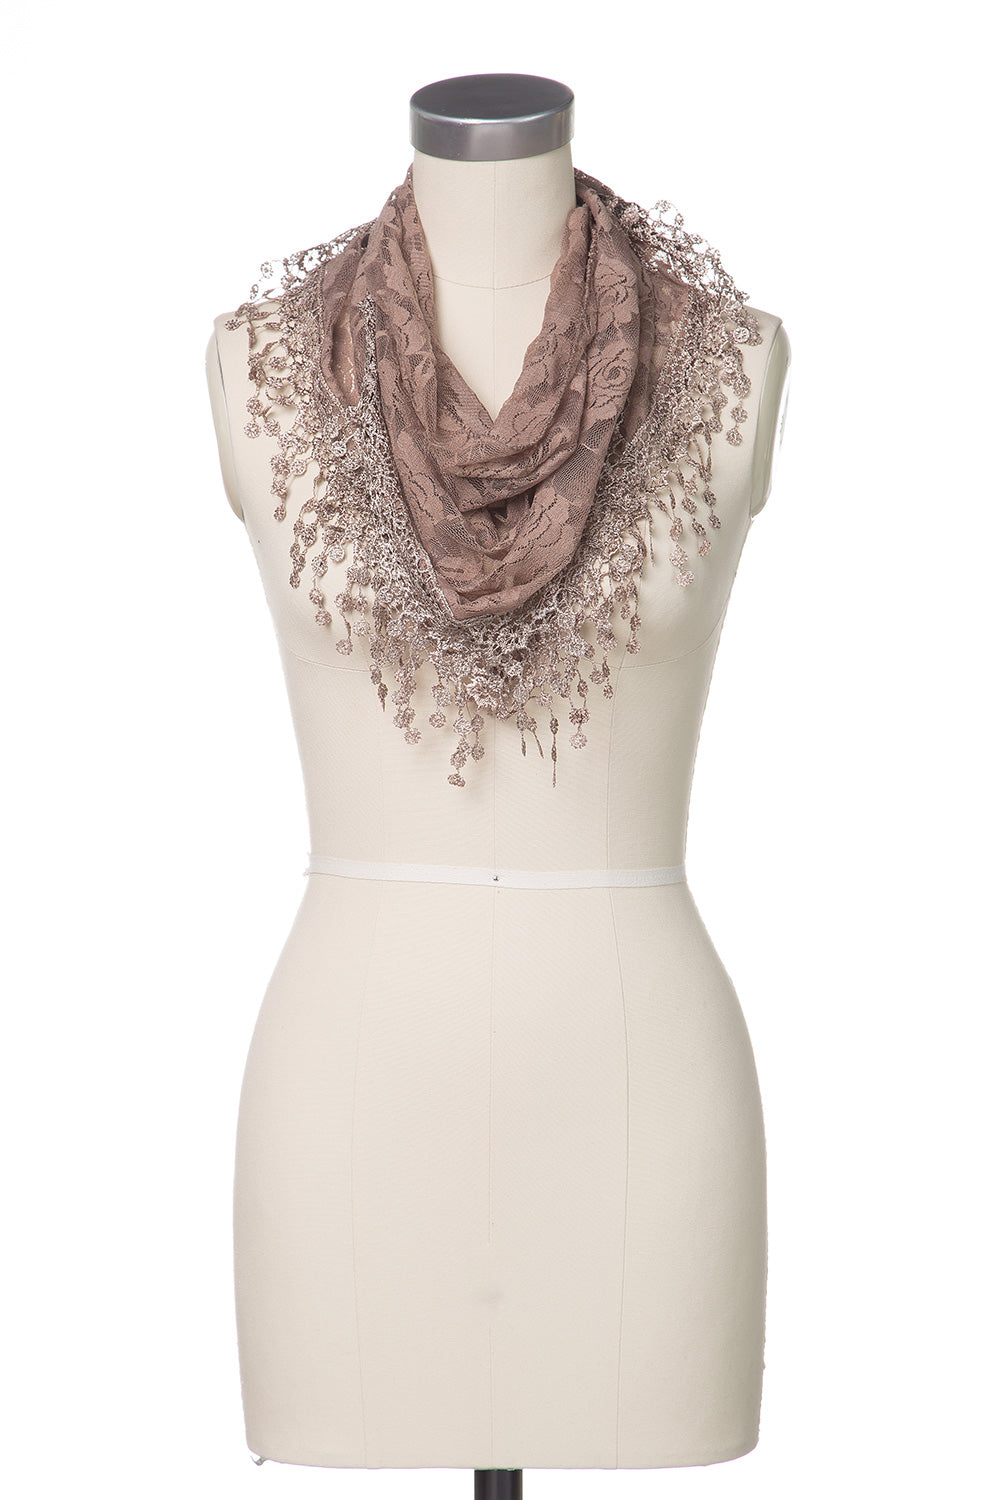 Type 2 Vintage Lace Scarf in Sepia